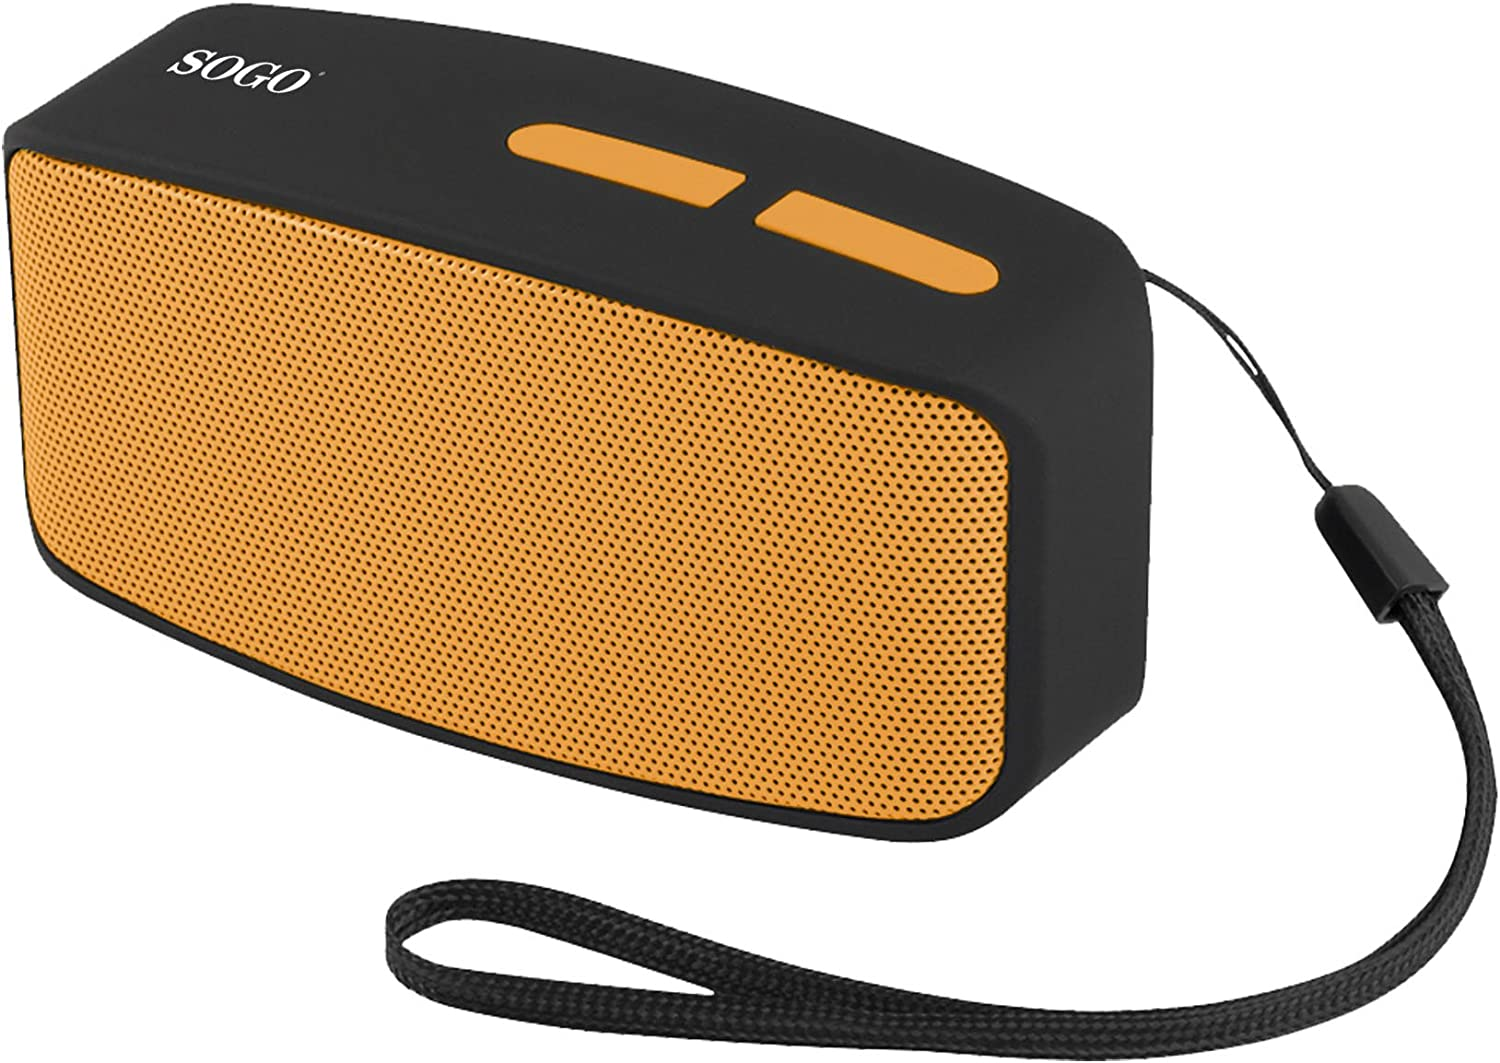 Sogo SS-8215-O - Altavoz portátil con Bluetooth, Radio FM, AUX IN, USB, Micro SD, Color Amarillo: Amazon.es: Electrónica